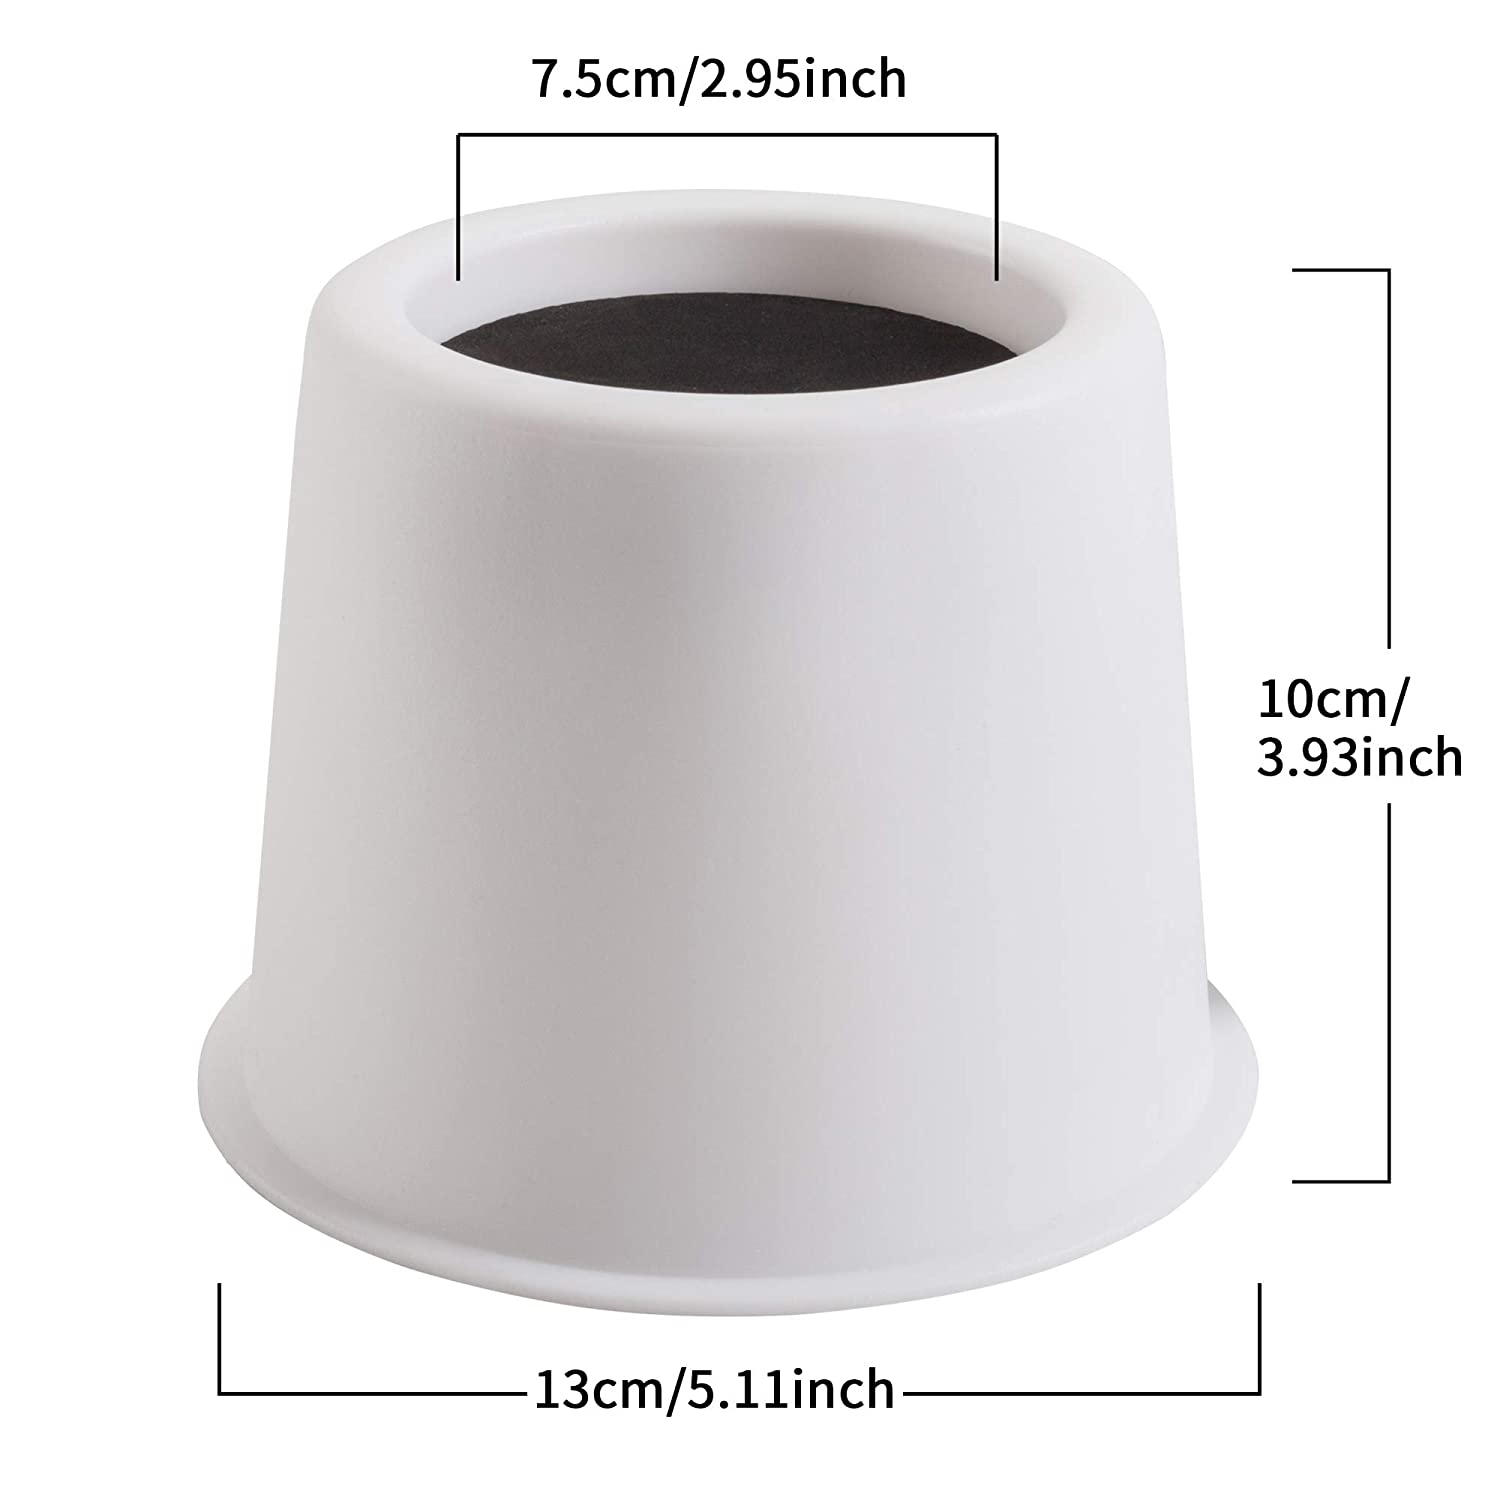 Supports 2,000 lbs Set of 4 white Lift Furniture Risers,Adds 2 Height to Heavy Furniture or Beds Aocool Adjustable Bed Risers